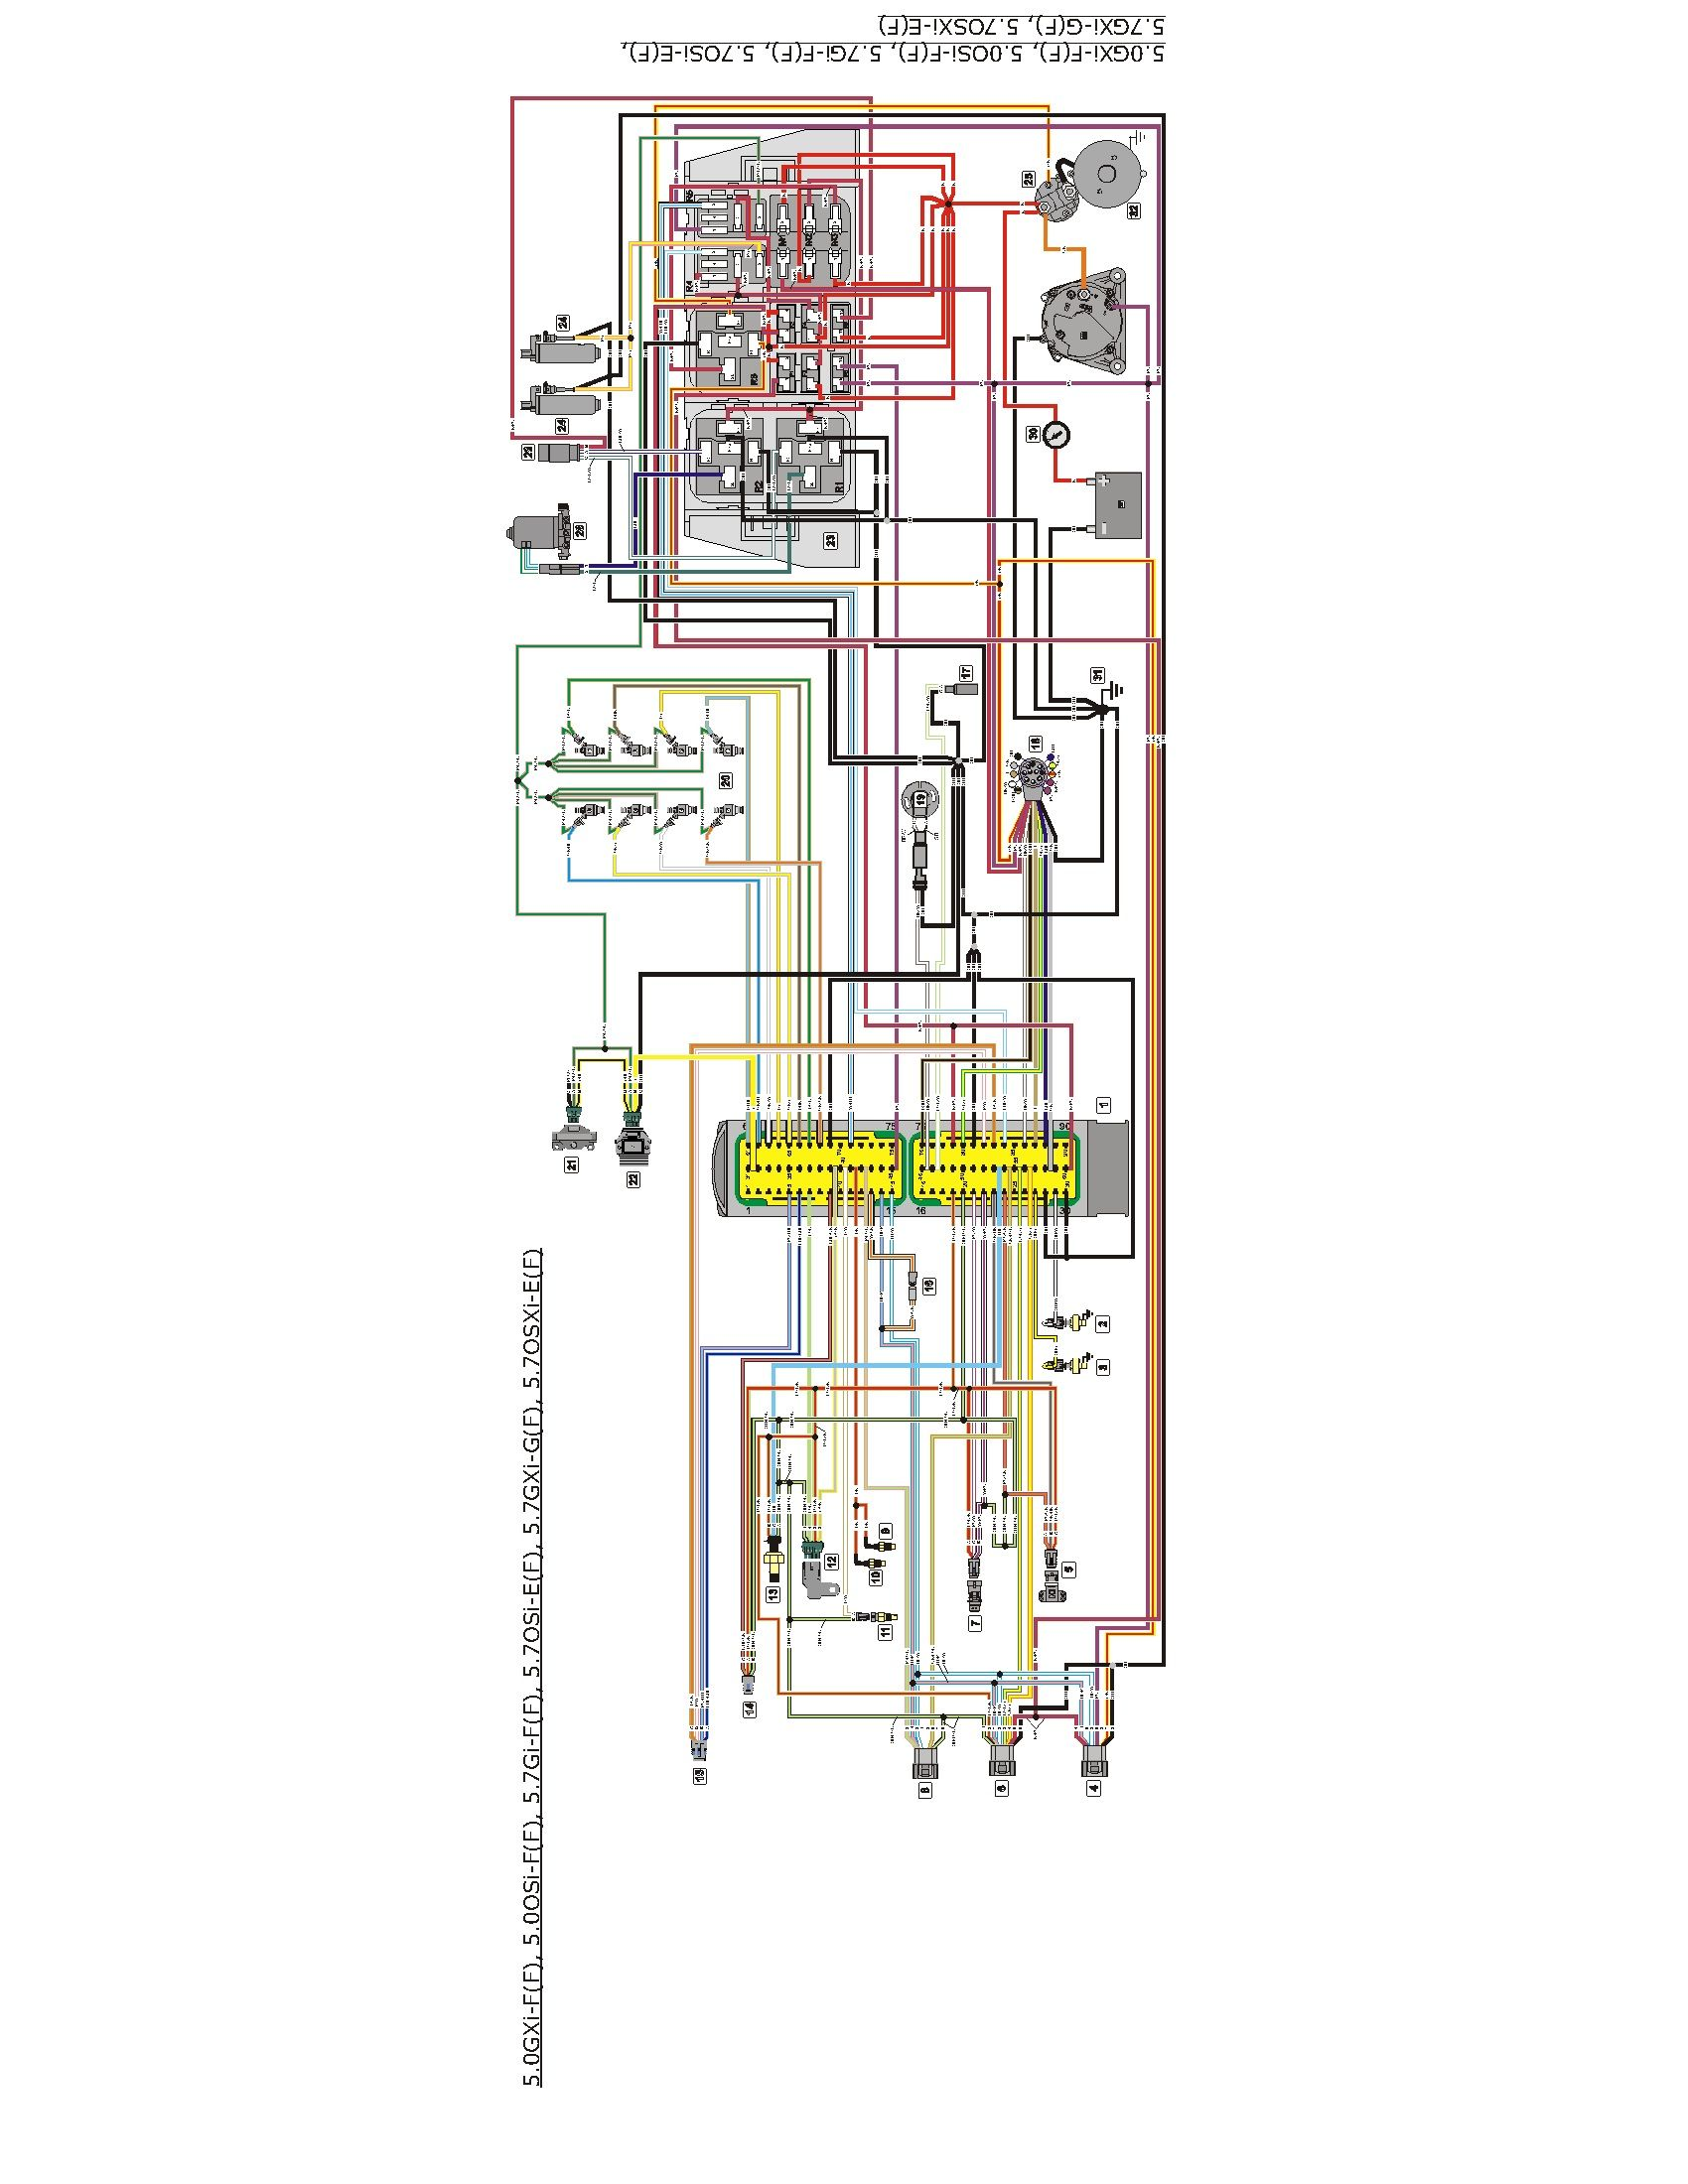 38e0106861e0fe47e508530985b32839 volvo penta 5 7 wiring diagram simple boat wiring diagram \u2022 free volvo penta 5.7 gxi wiring diagram at metegol.co